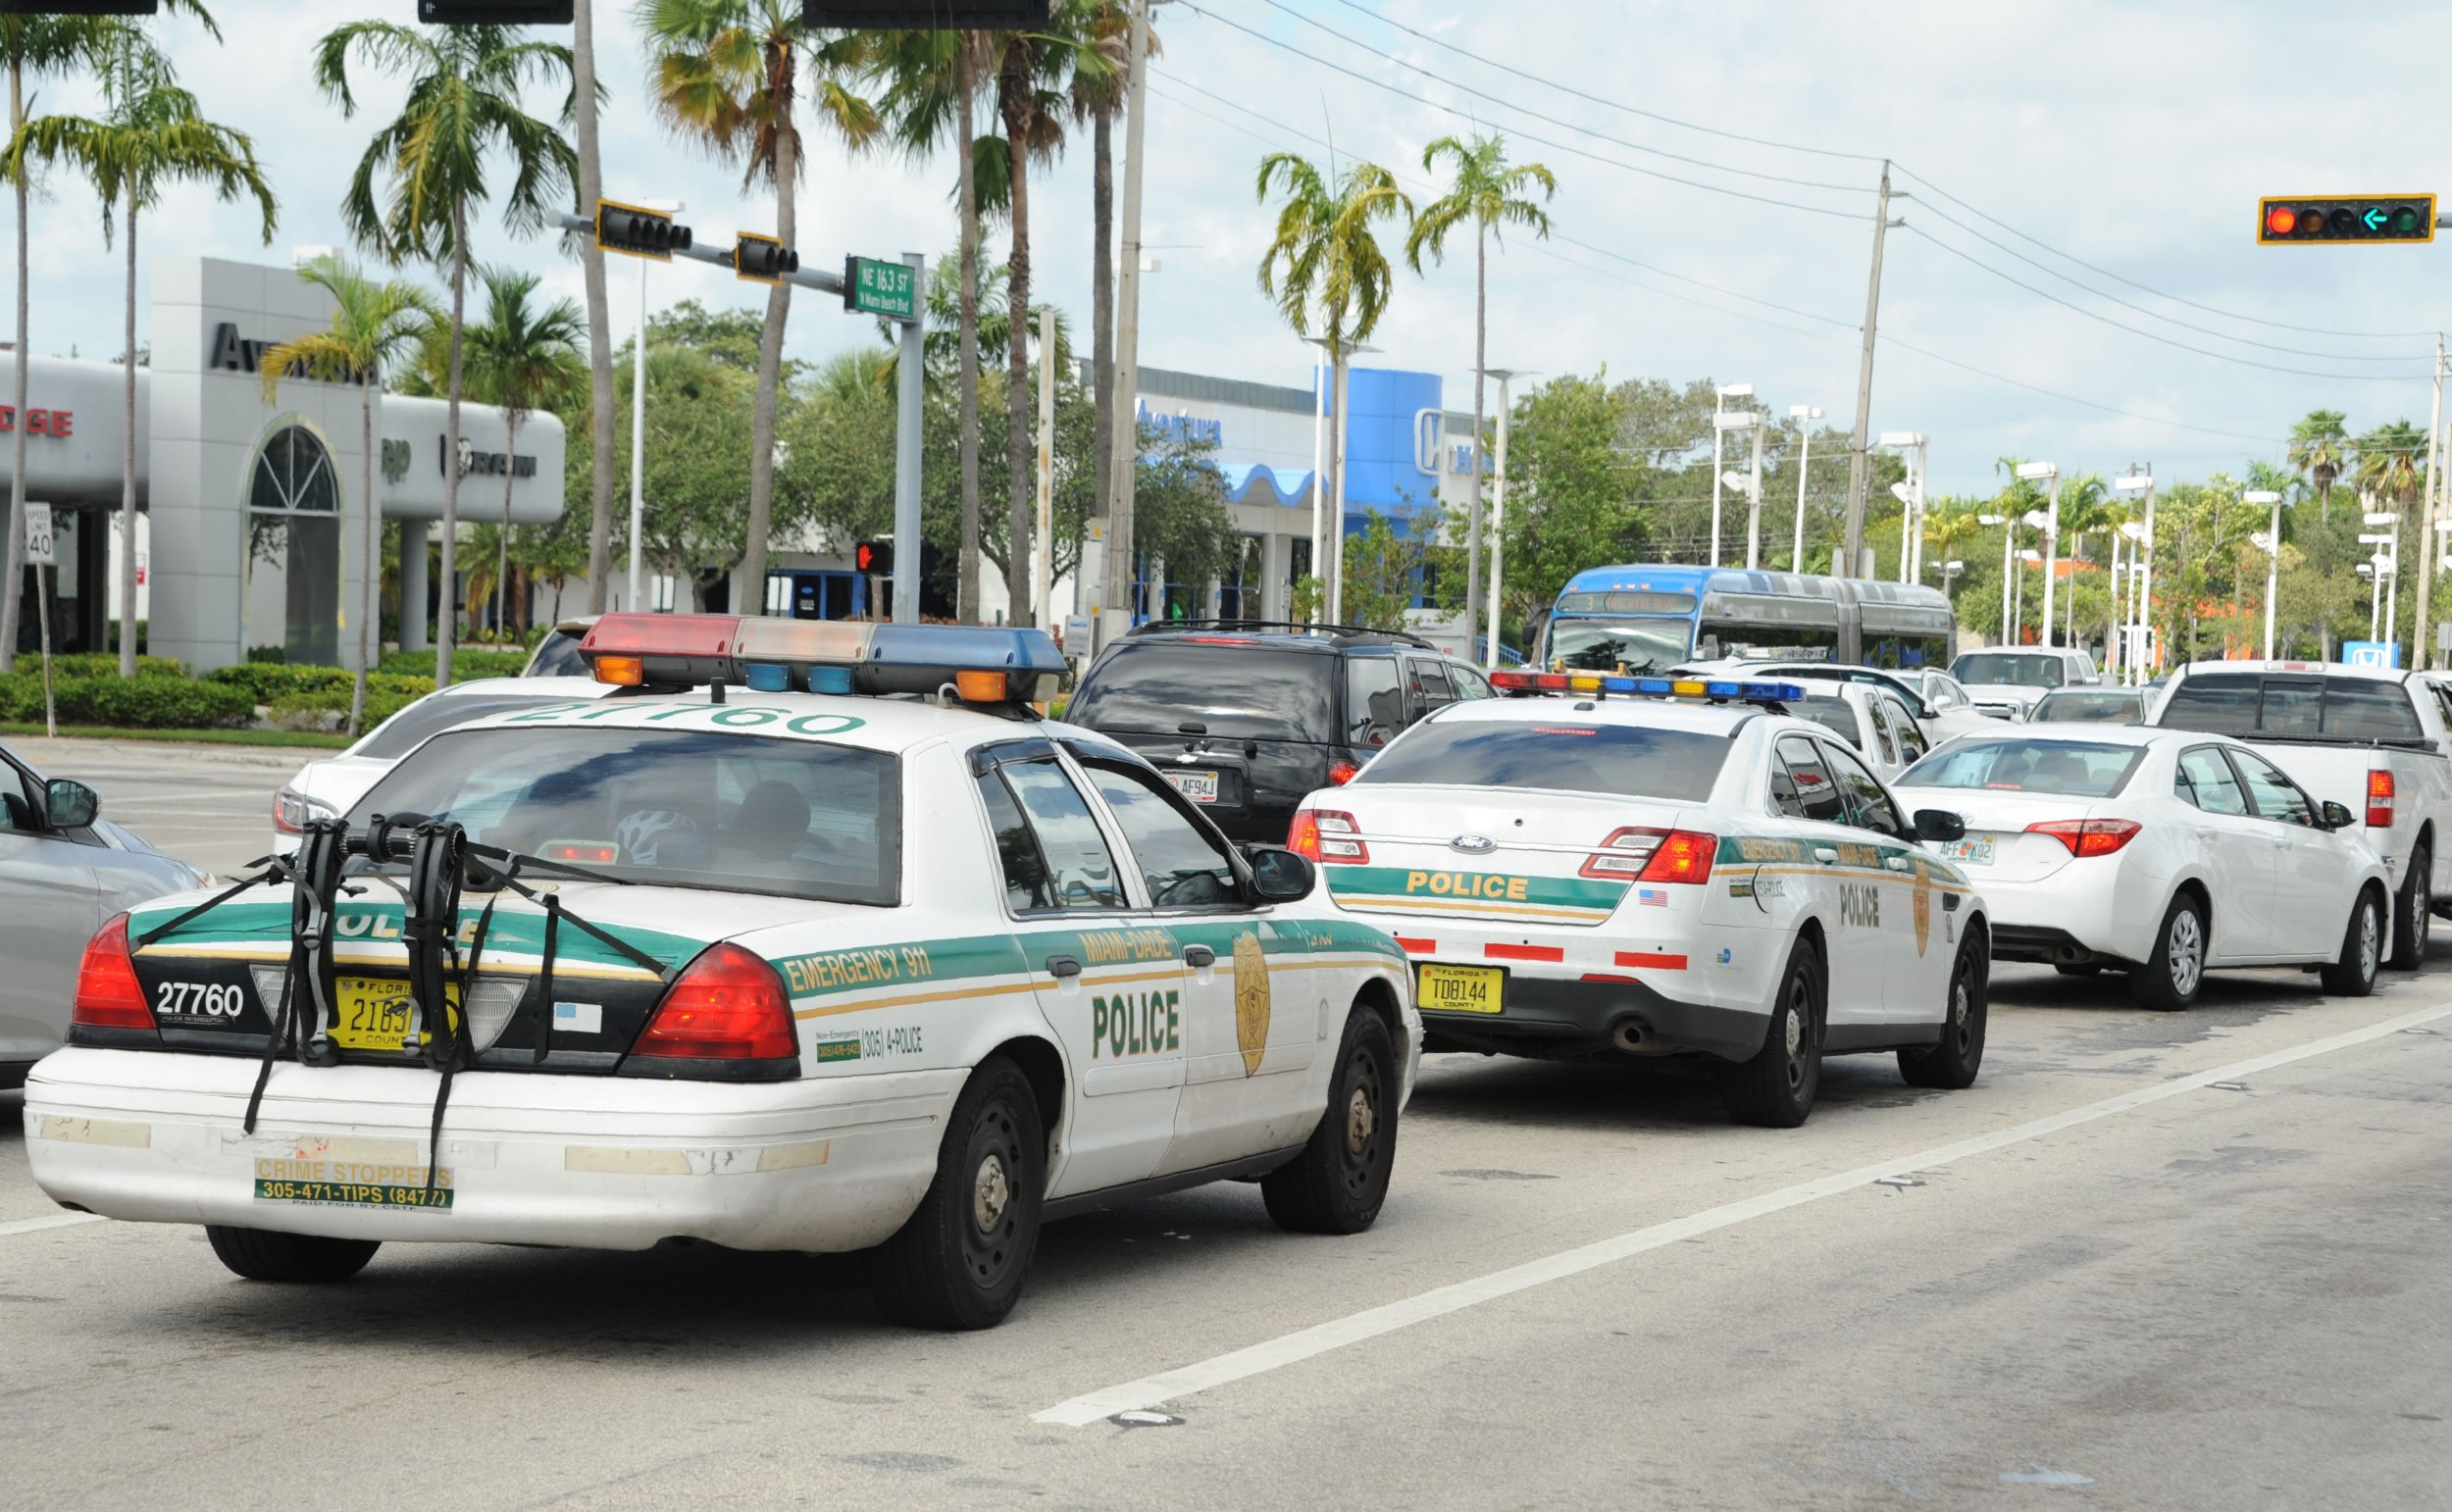 Miami commissioner doubts officer will face charges for trying to kick suspect